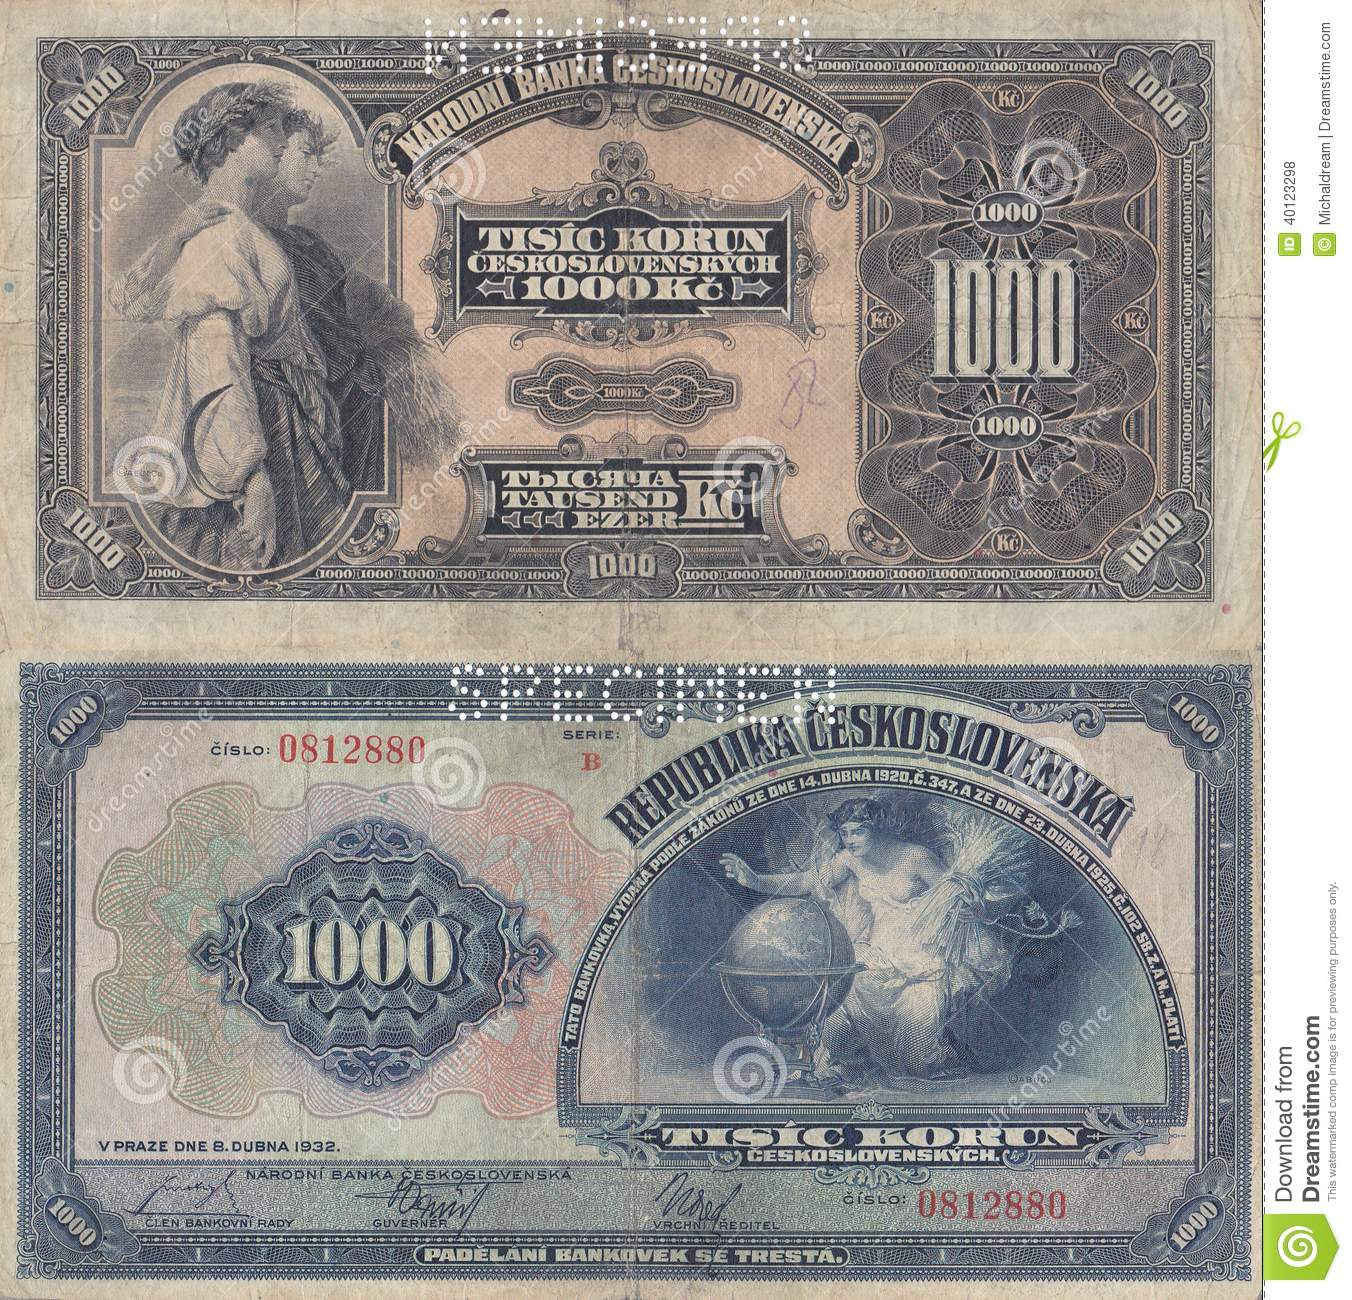 old paper money prices The purpose of this change was simply to save some money on paper, but the  timing  salmon p chase, on the $10,000 bill, was an old abolitionist lawyer  and  with paper money had already manifested themselves in a price inflation.